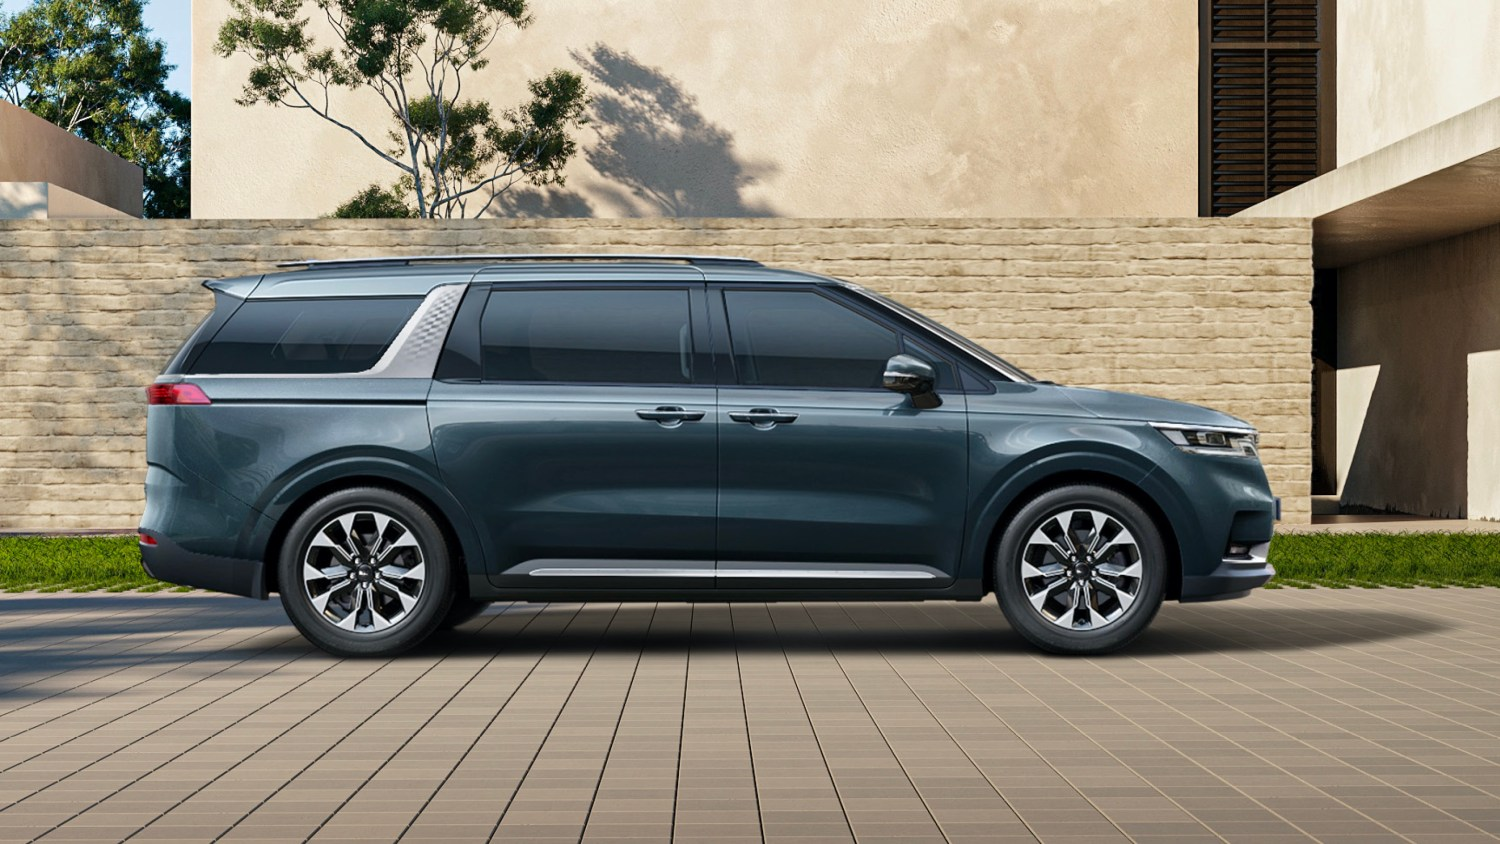 This New Kia Seats 11 People So, Go Ahead And Bring The Entire Family For A Ride